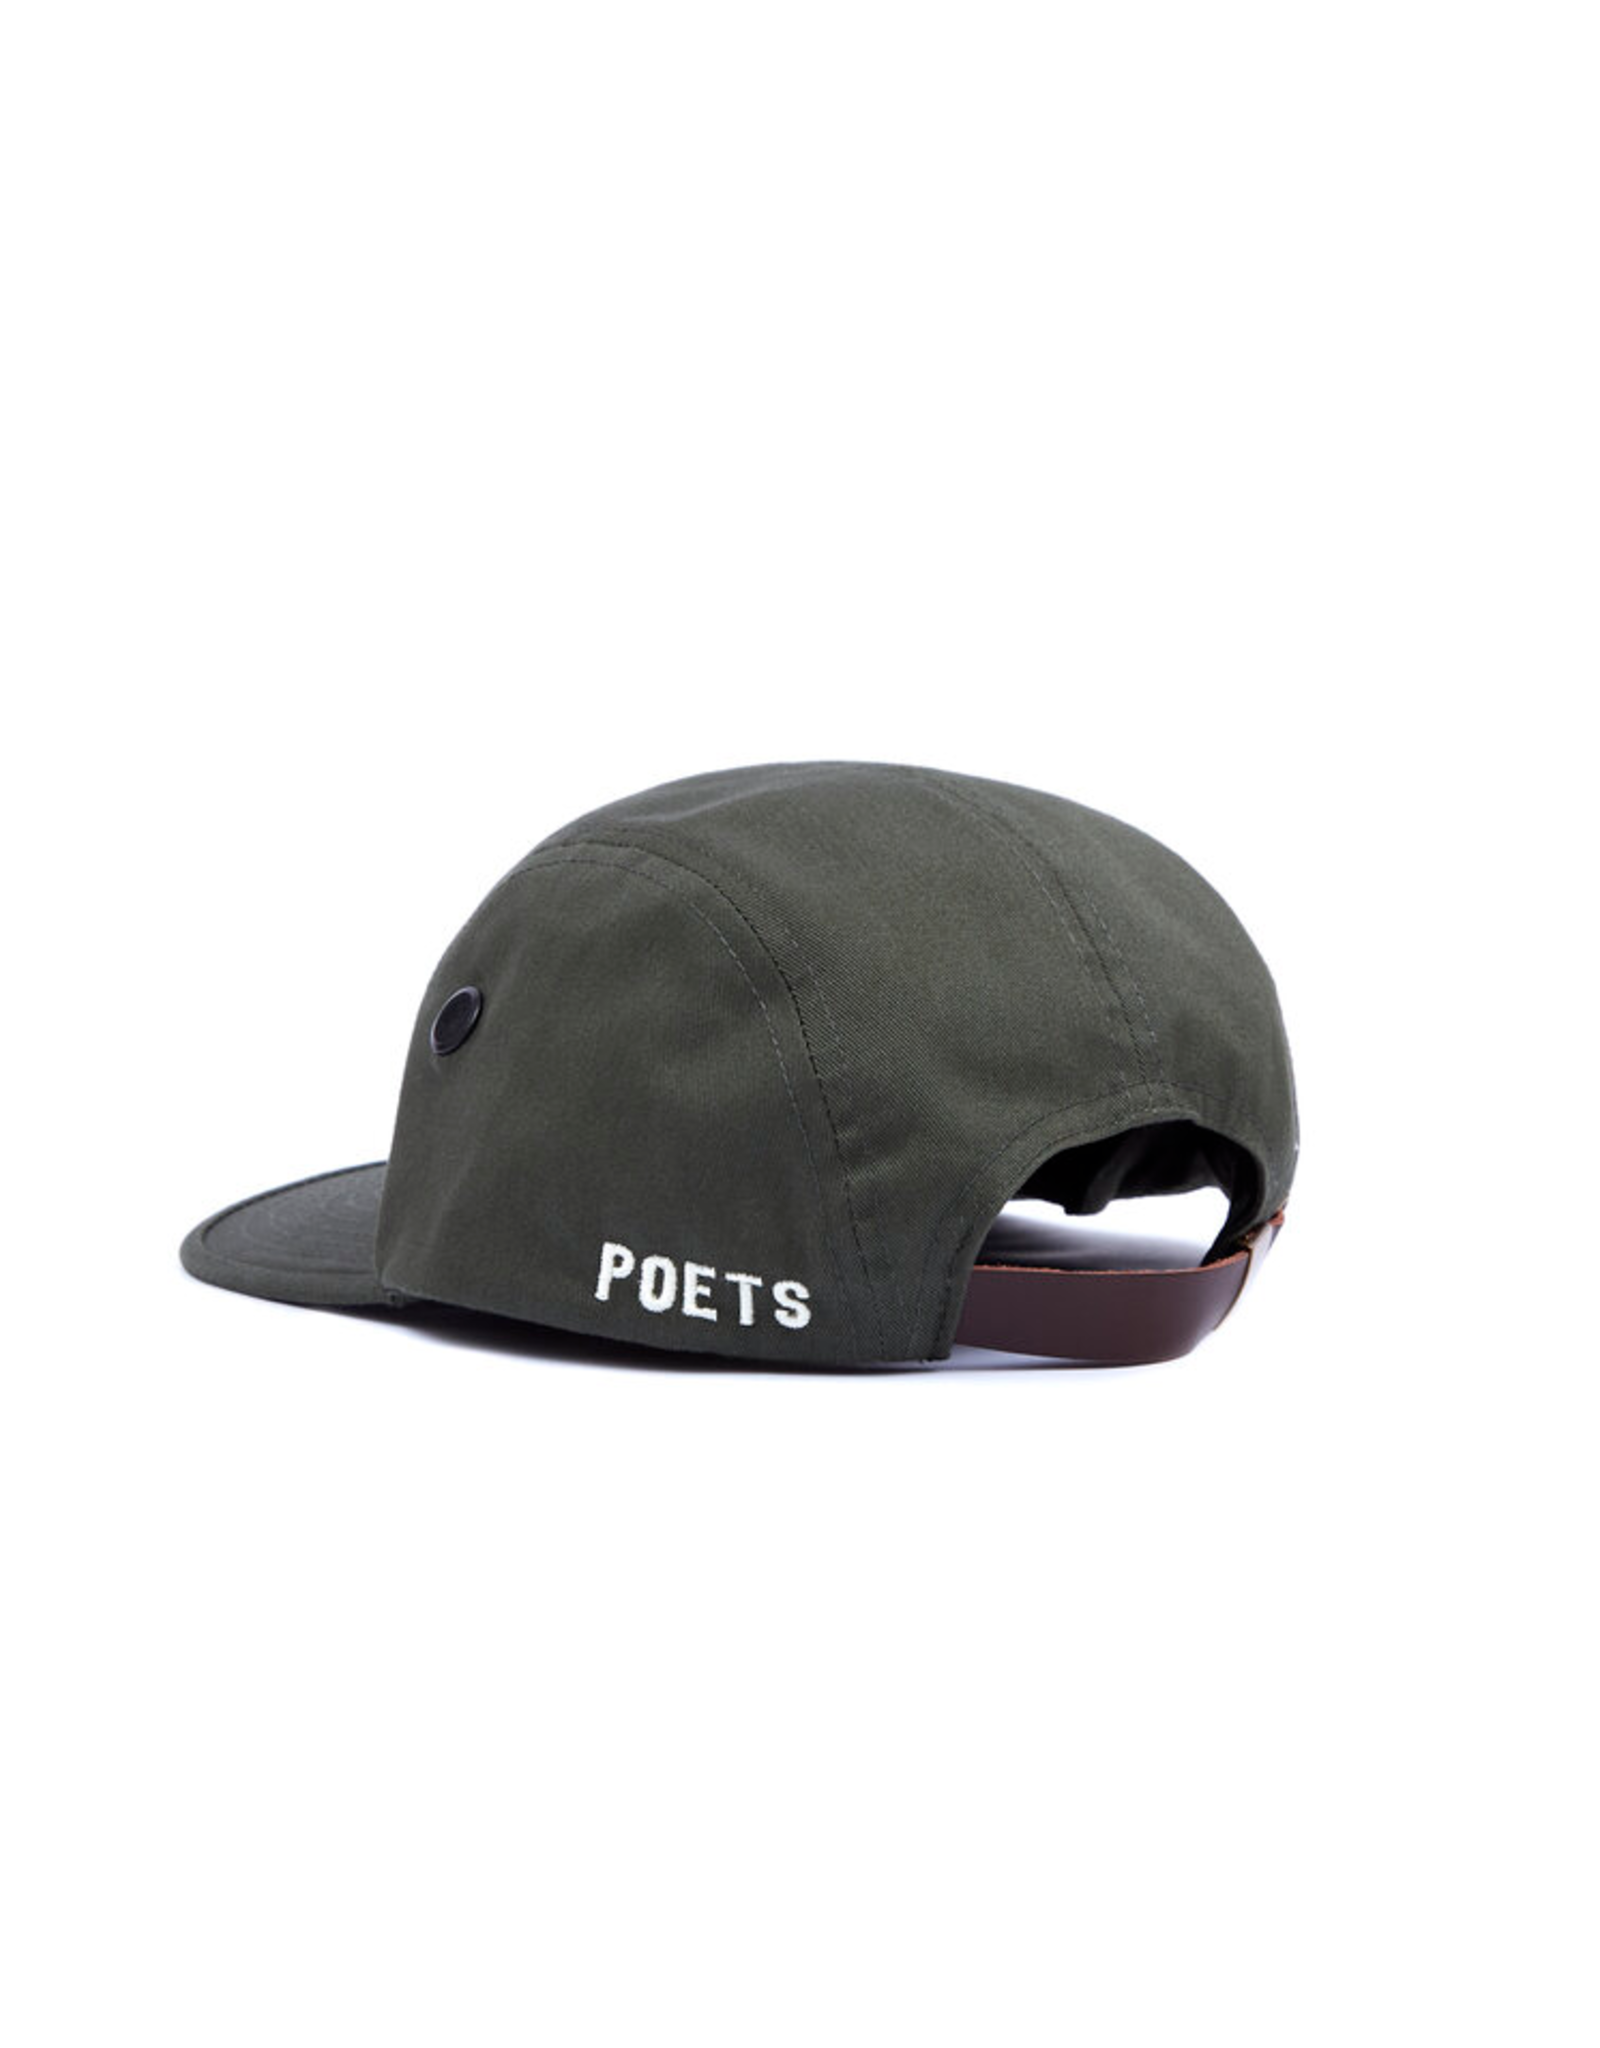 Poets Turtle Hill - Army Green